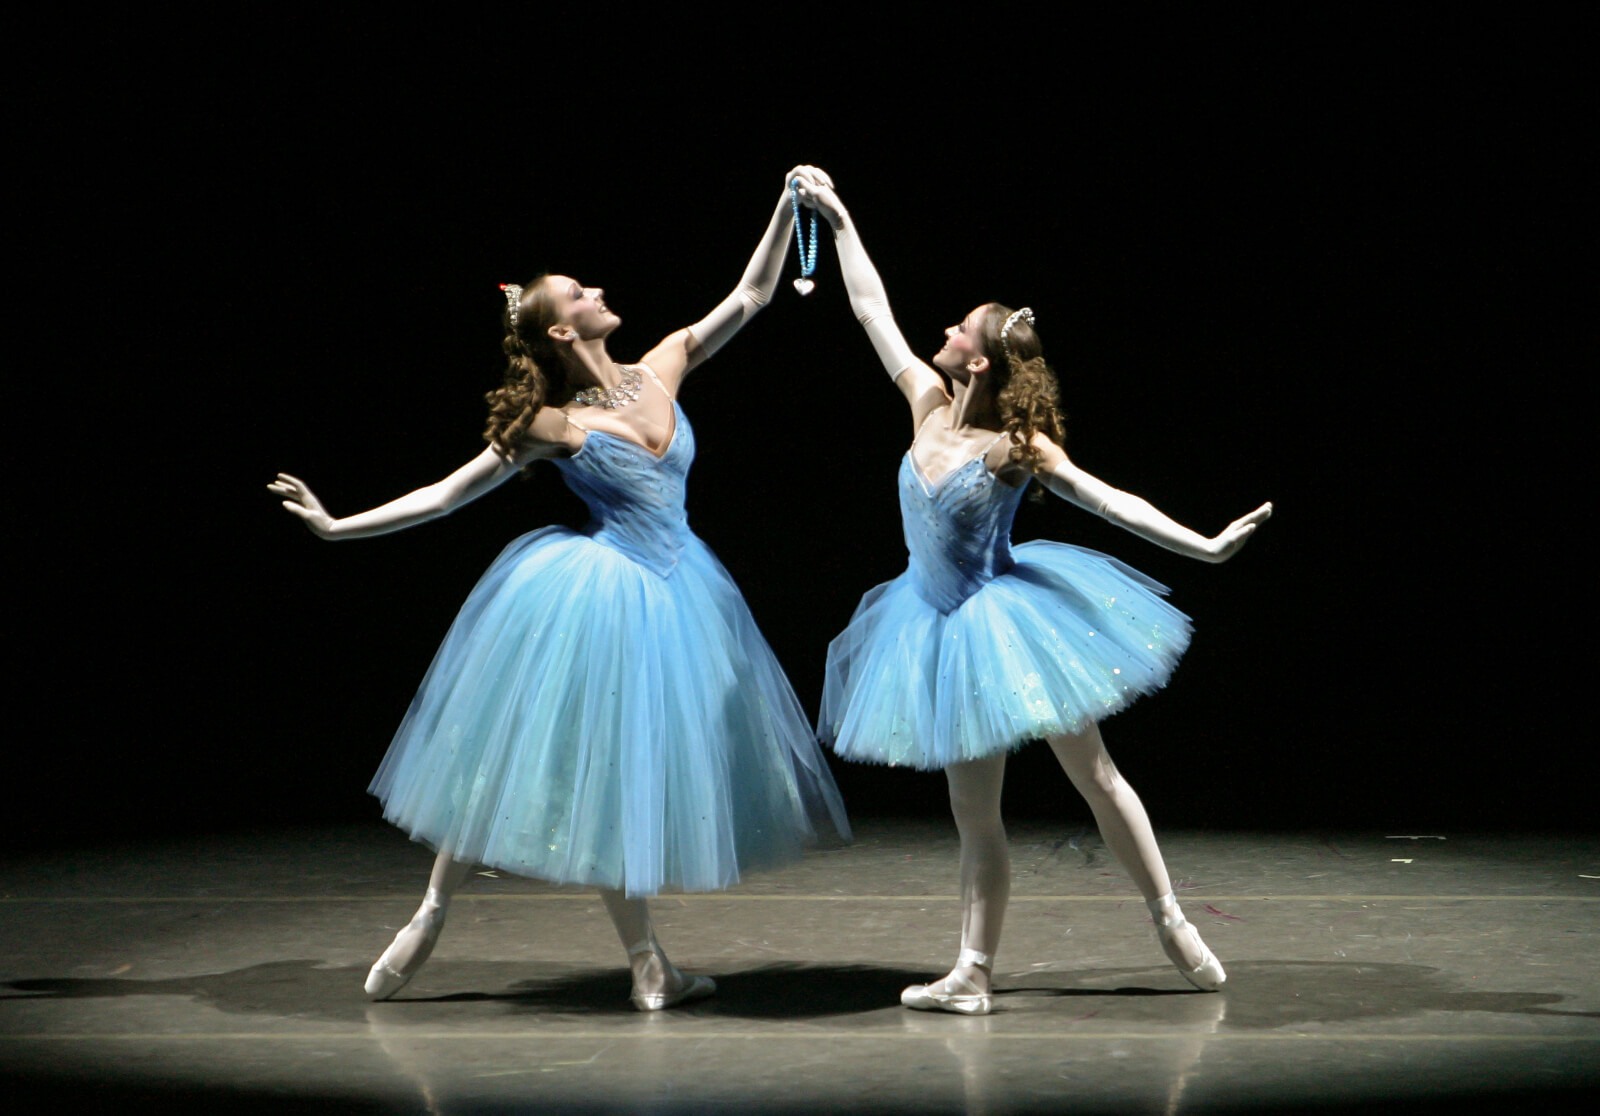 Maria Korowski and Ashley Bouder (both in blue tutus) with the Blue Necklace held in the air between them.